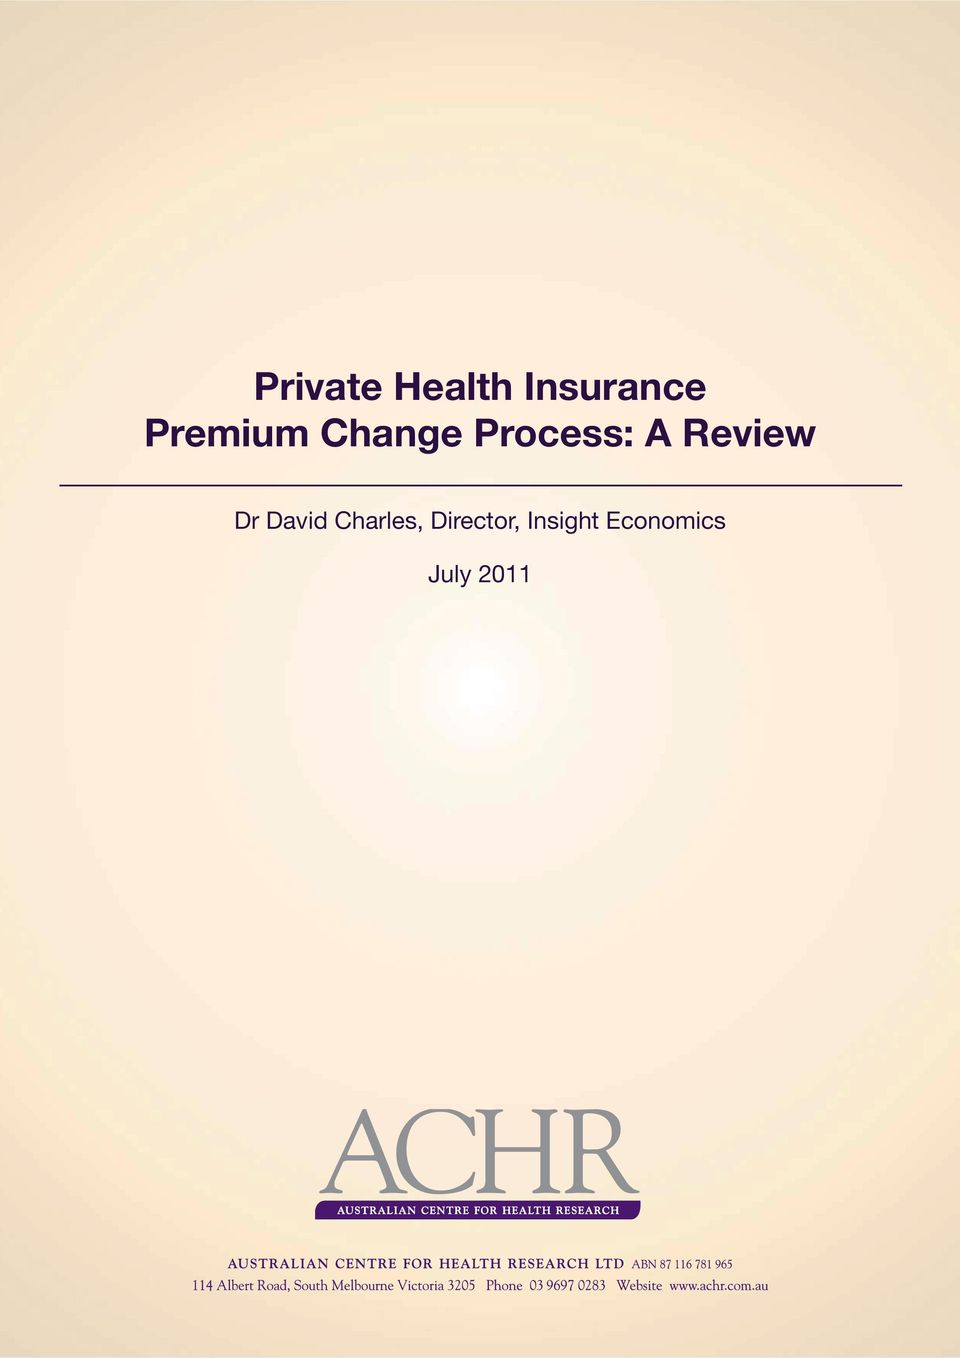 Review Dr David Charles,